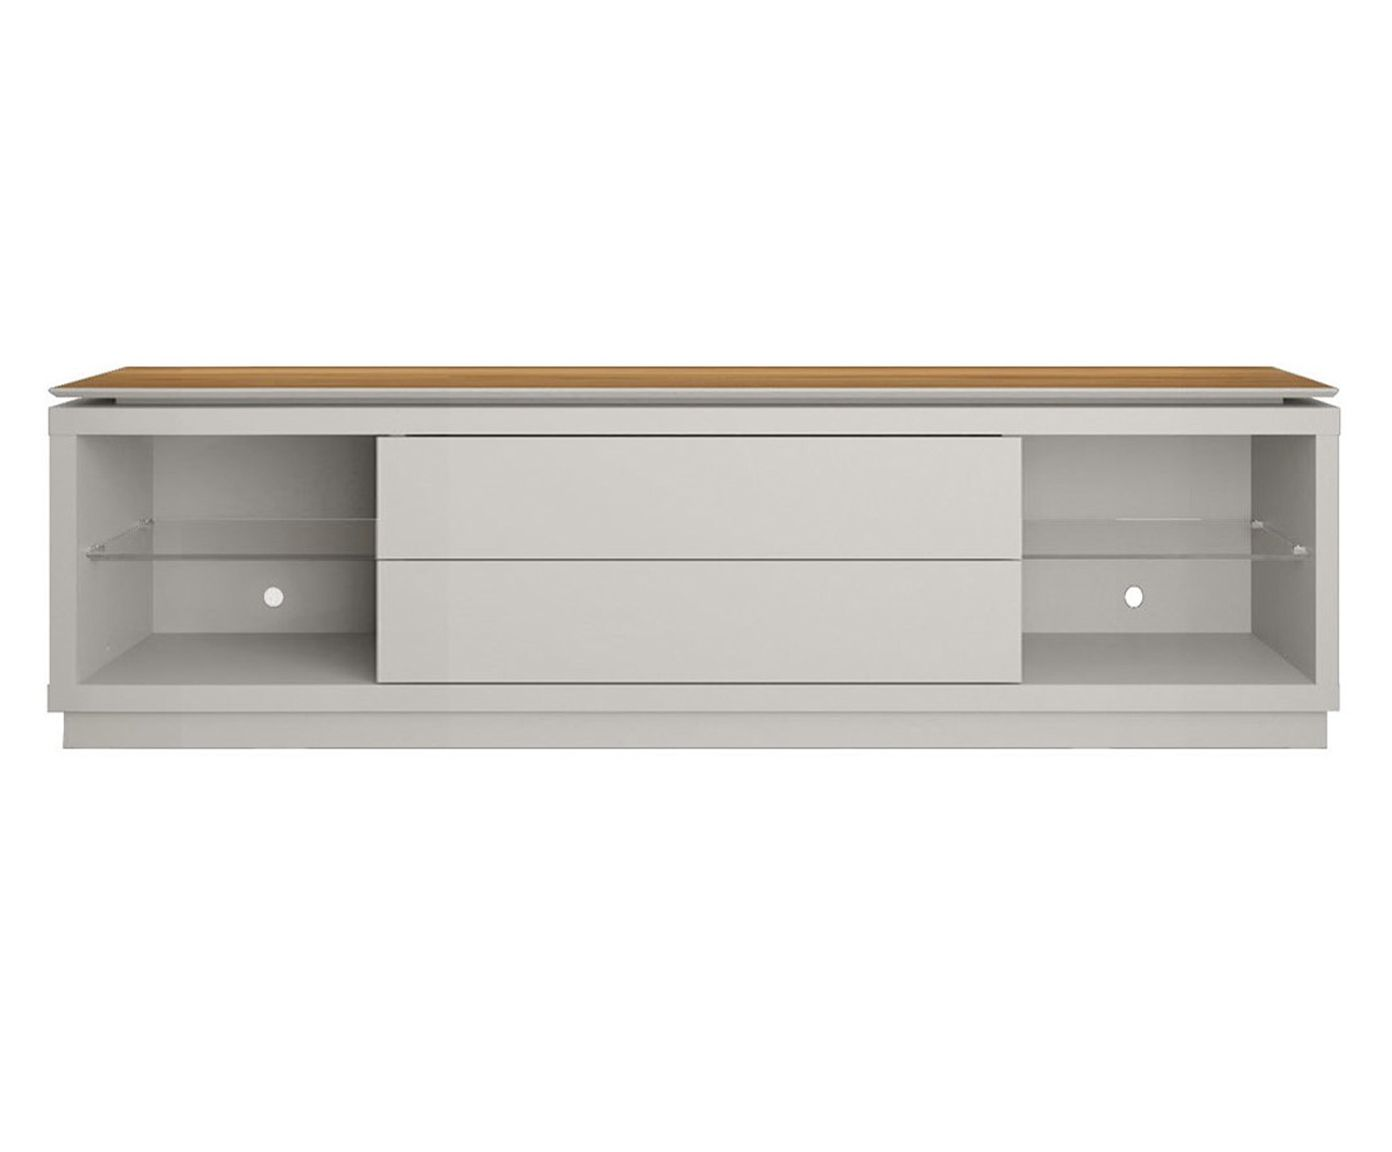 Rack Lincoln Off-White - 195X55,5X44.7cm | Westwing.com.br